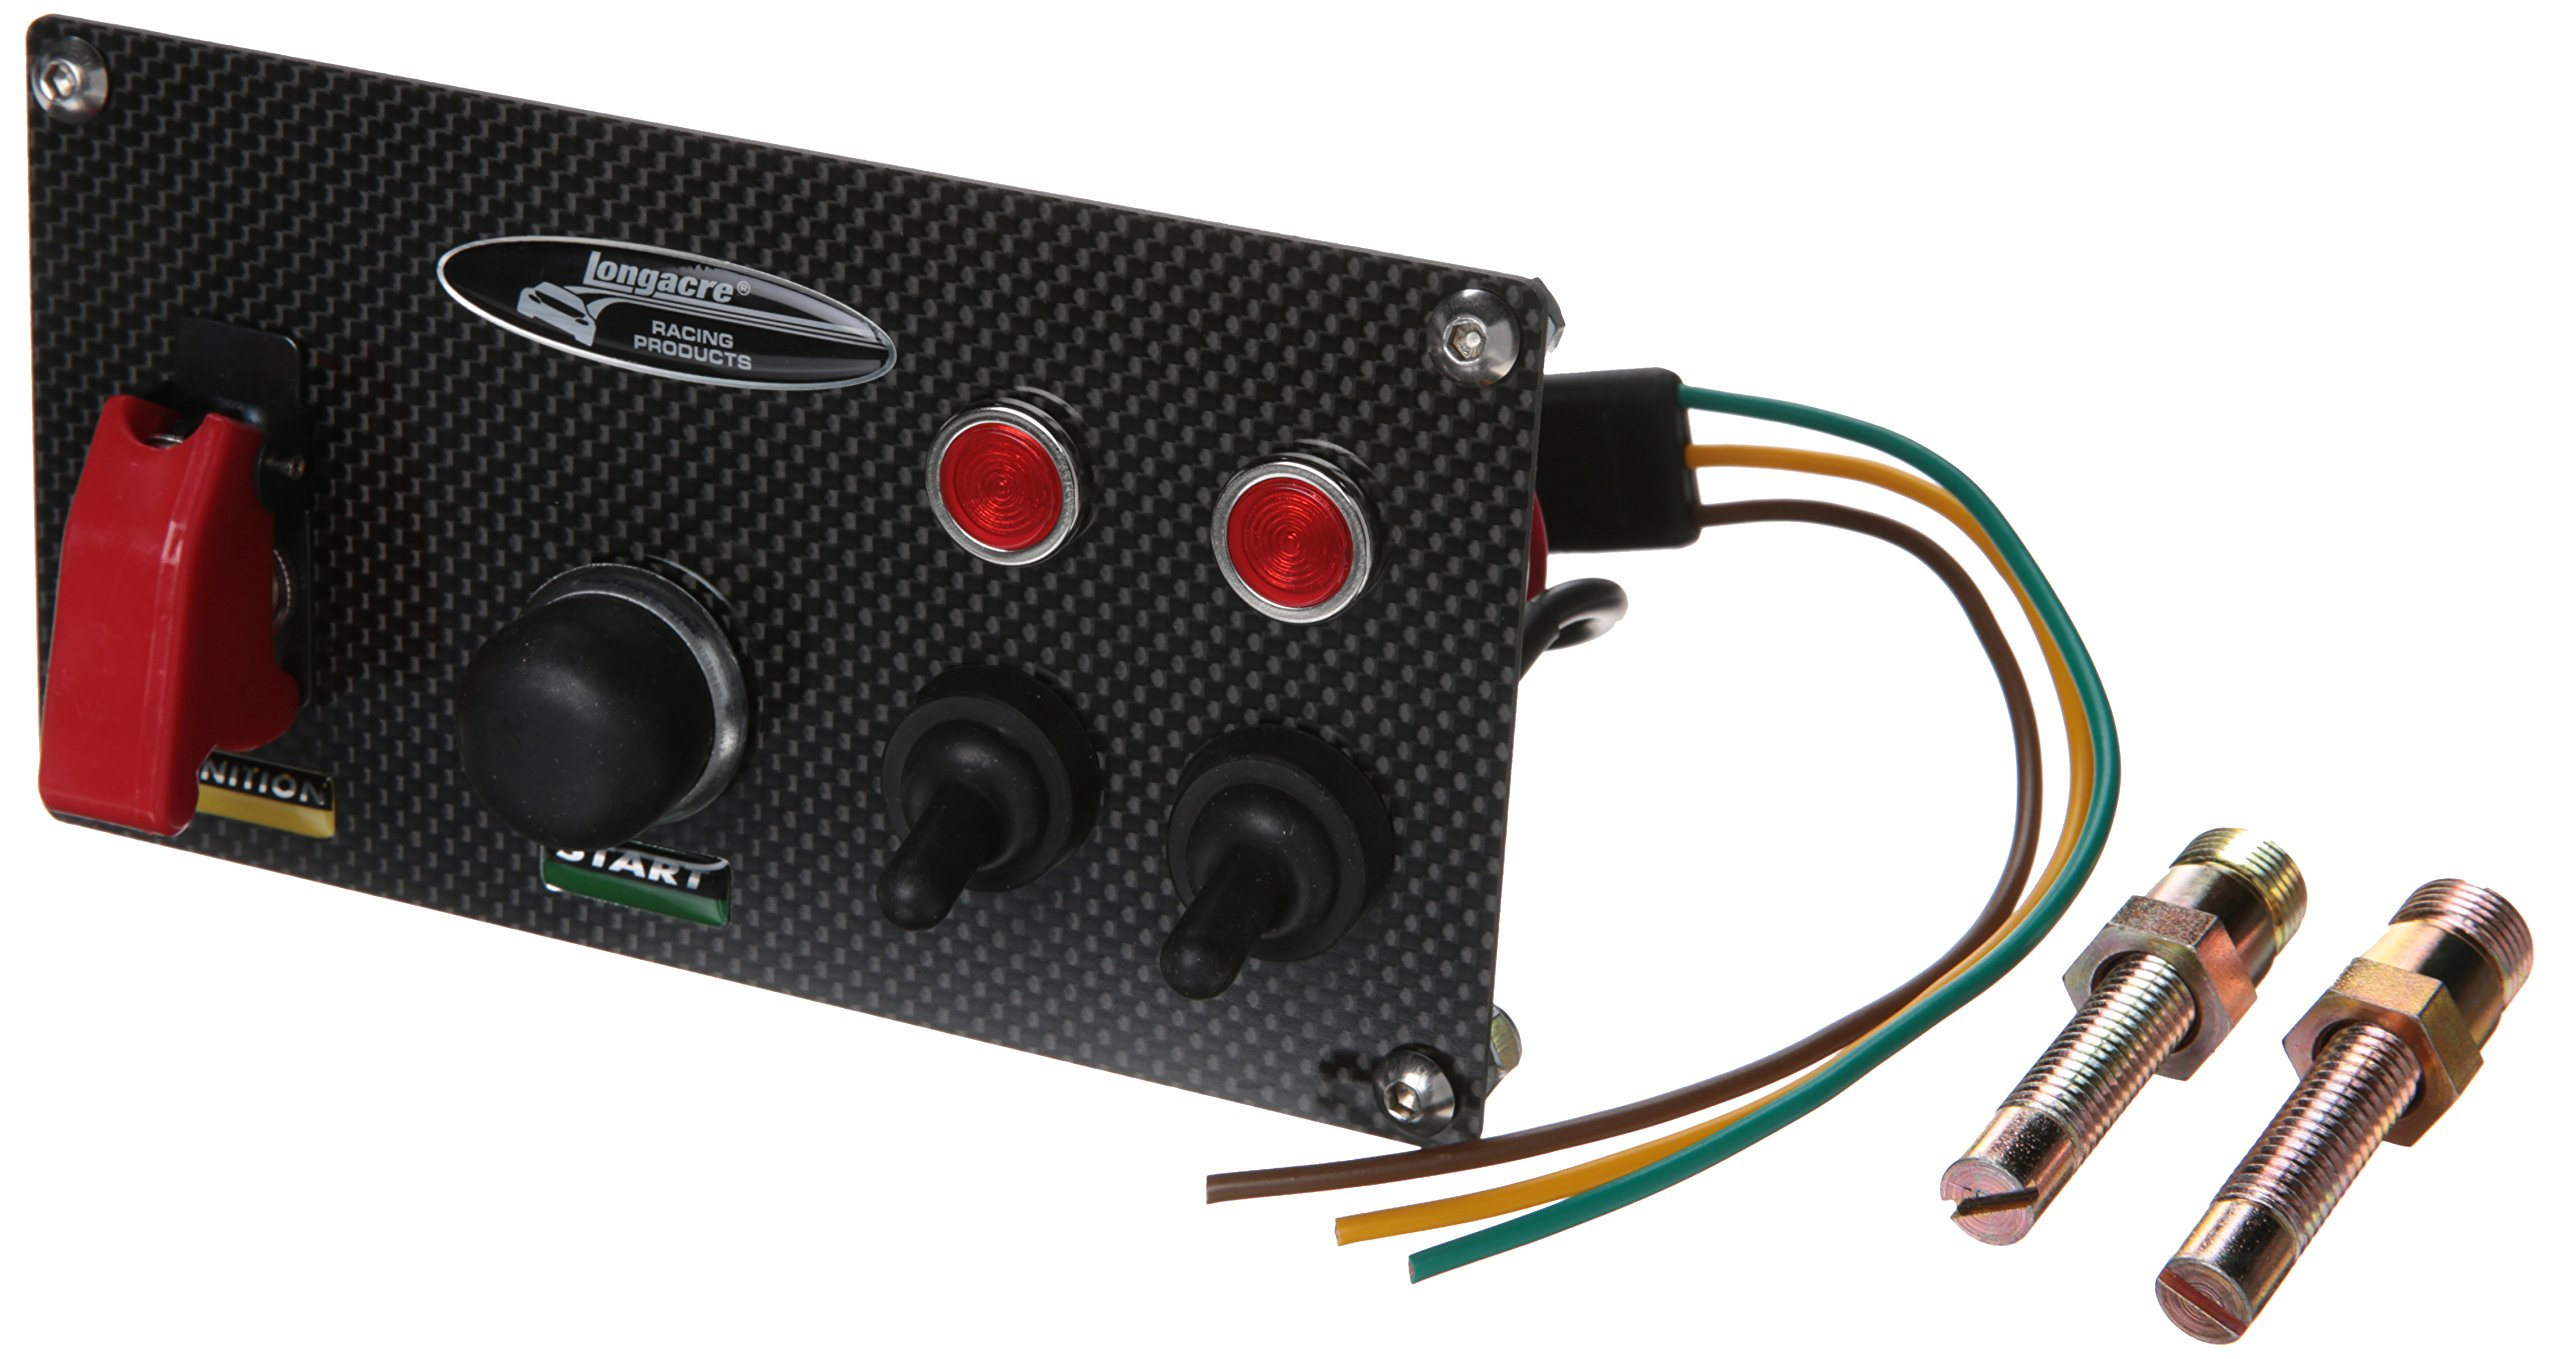 Buy Ignition Switch Longacre Panel Now!